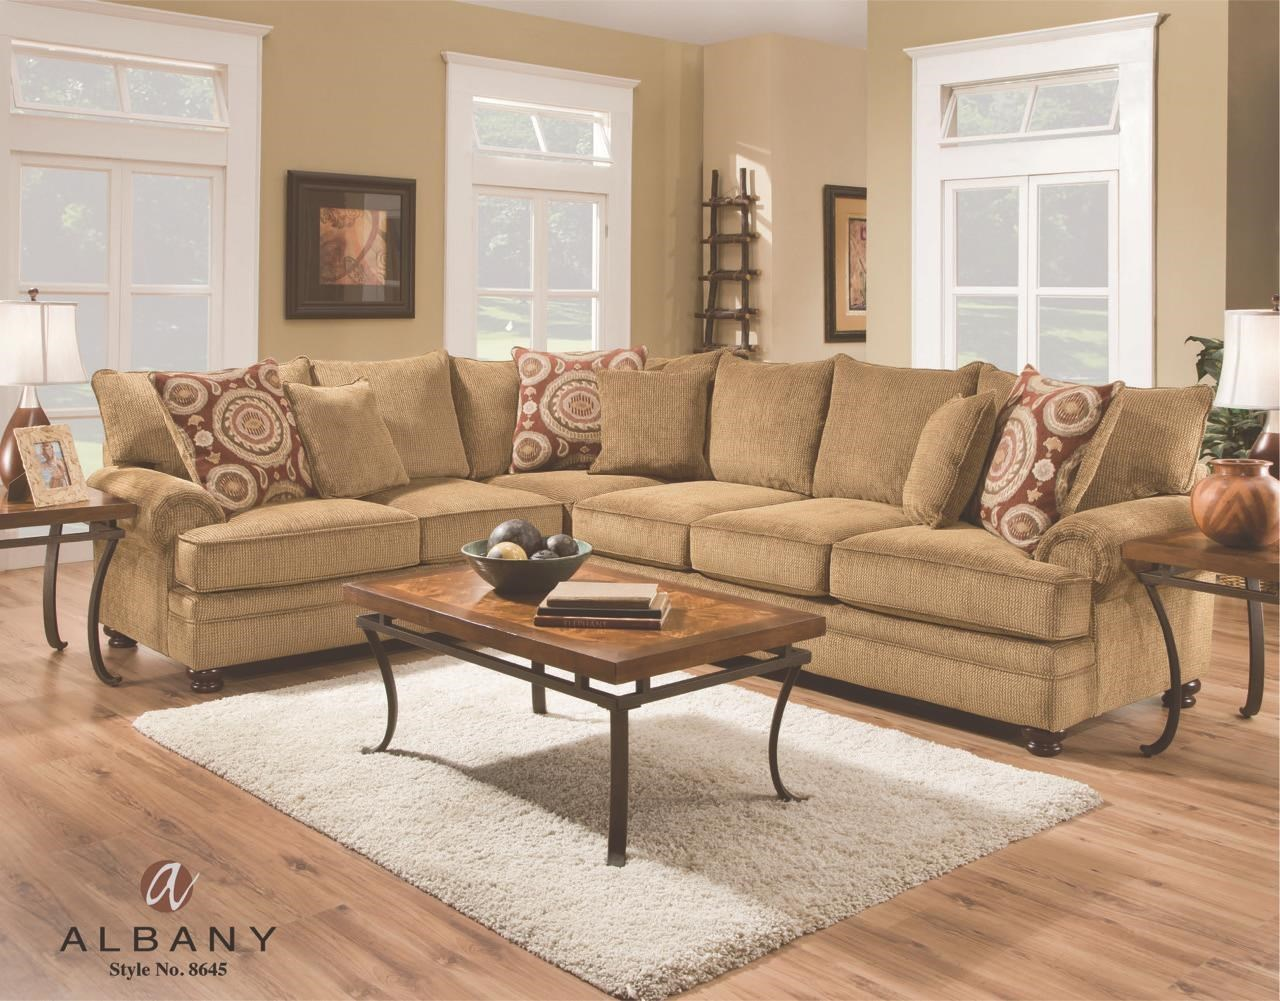 8642 transitional sectional sofa with chaise by albany small living room ideas corner essence grp 8645 2